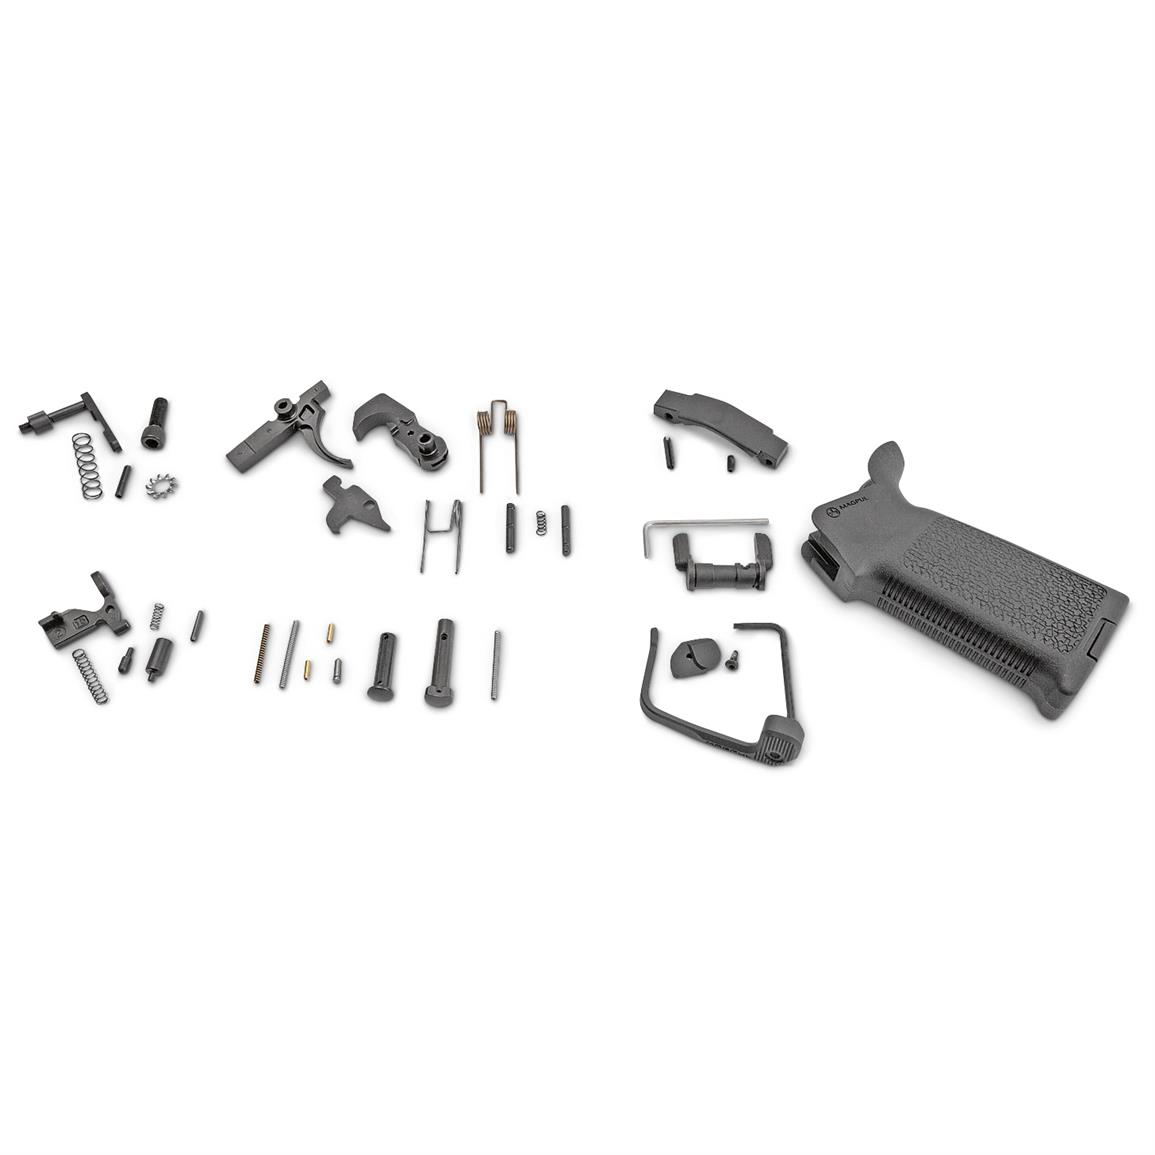 Anderson Rifles Magpul Enhanced Lower Parts Kit